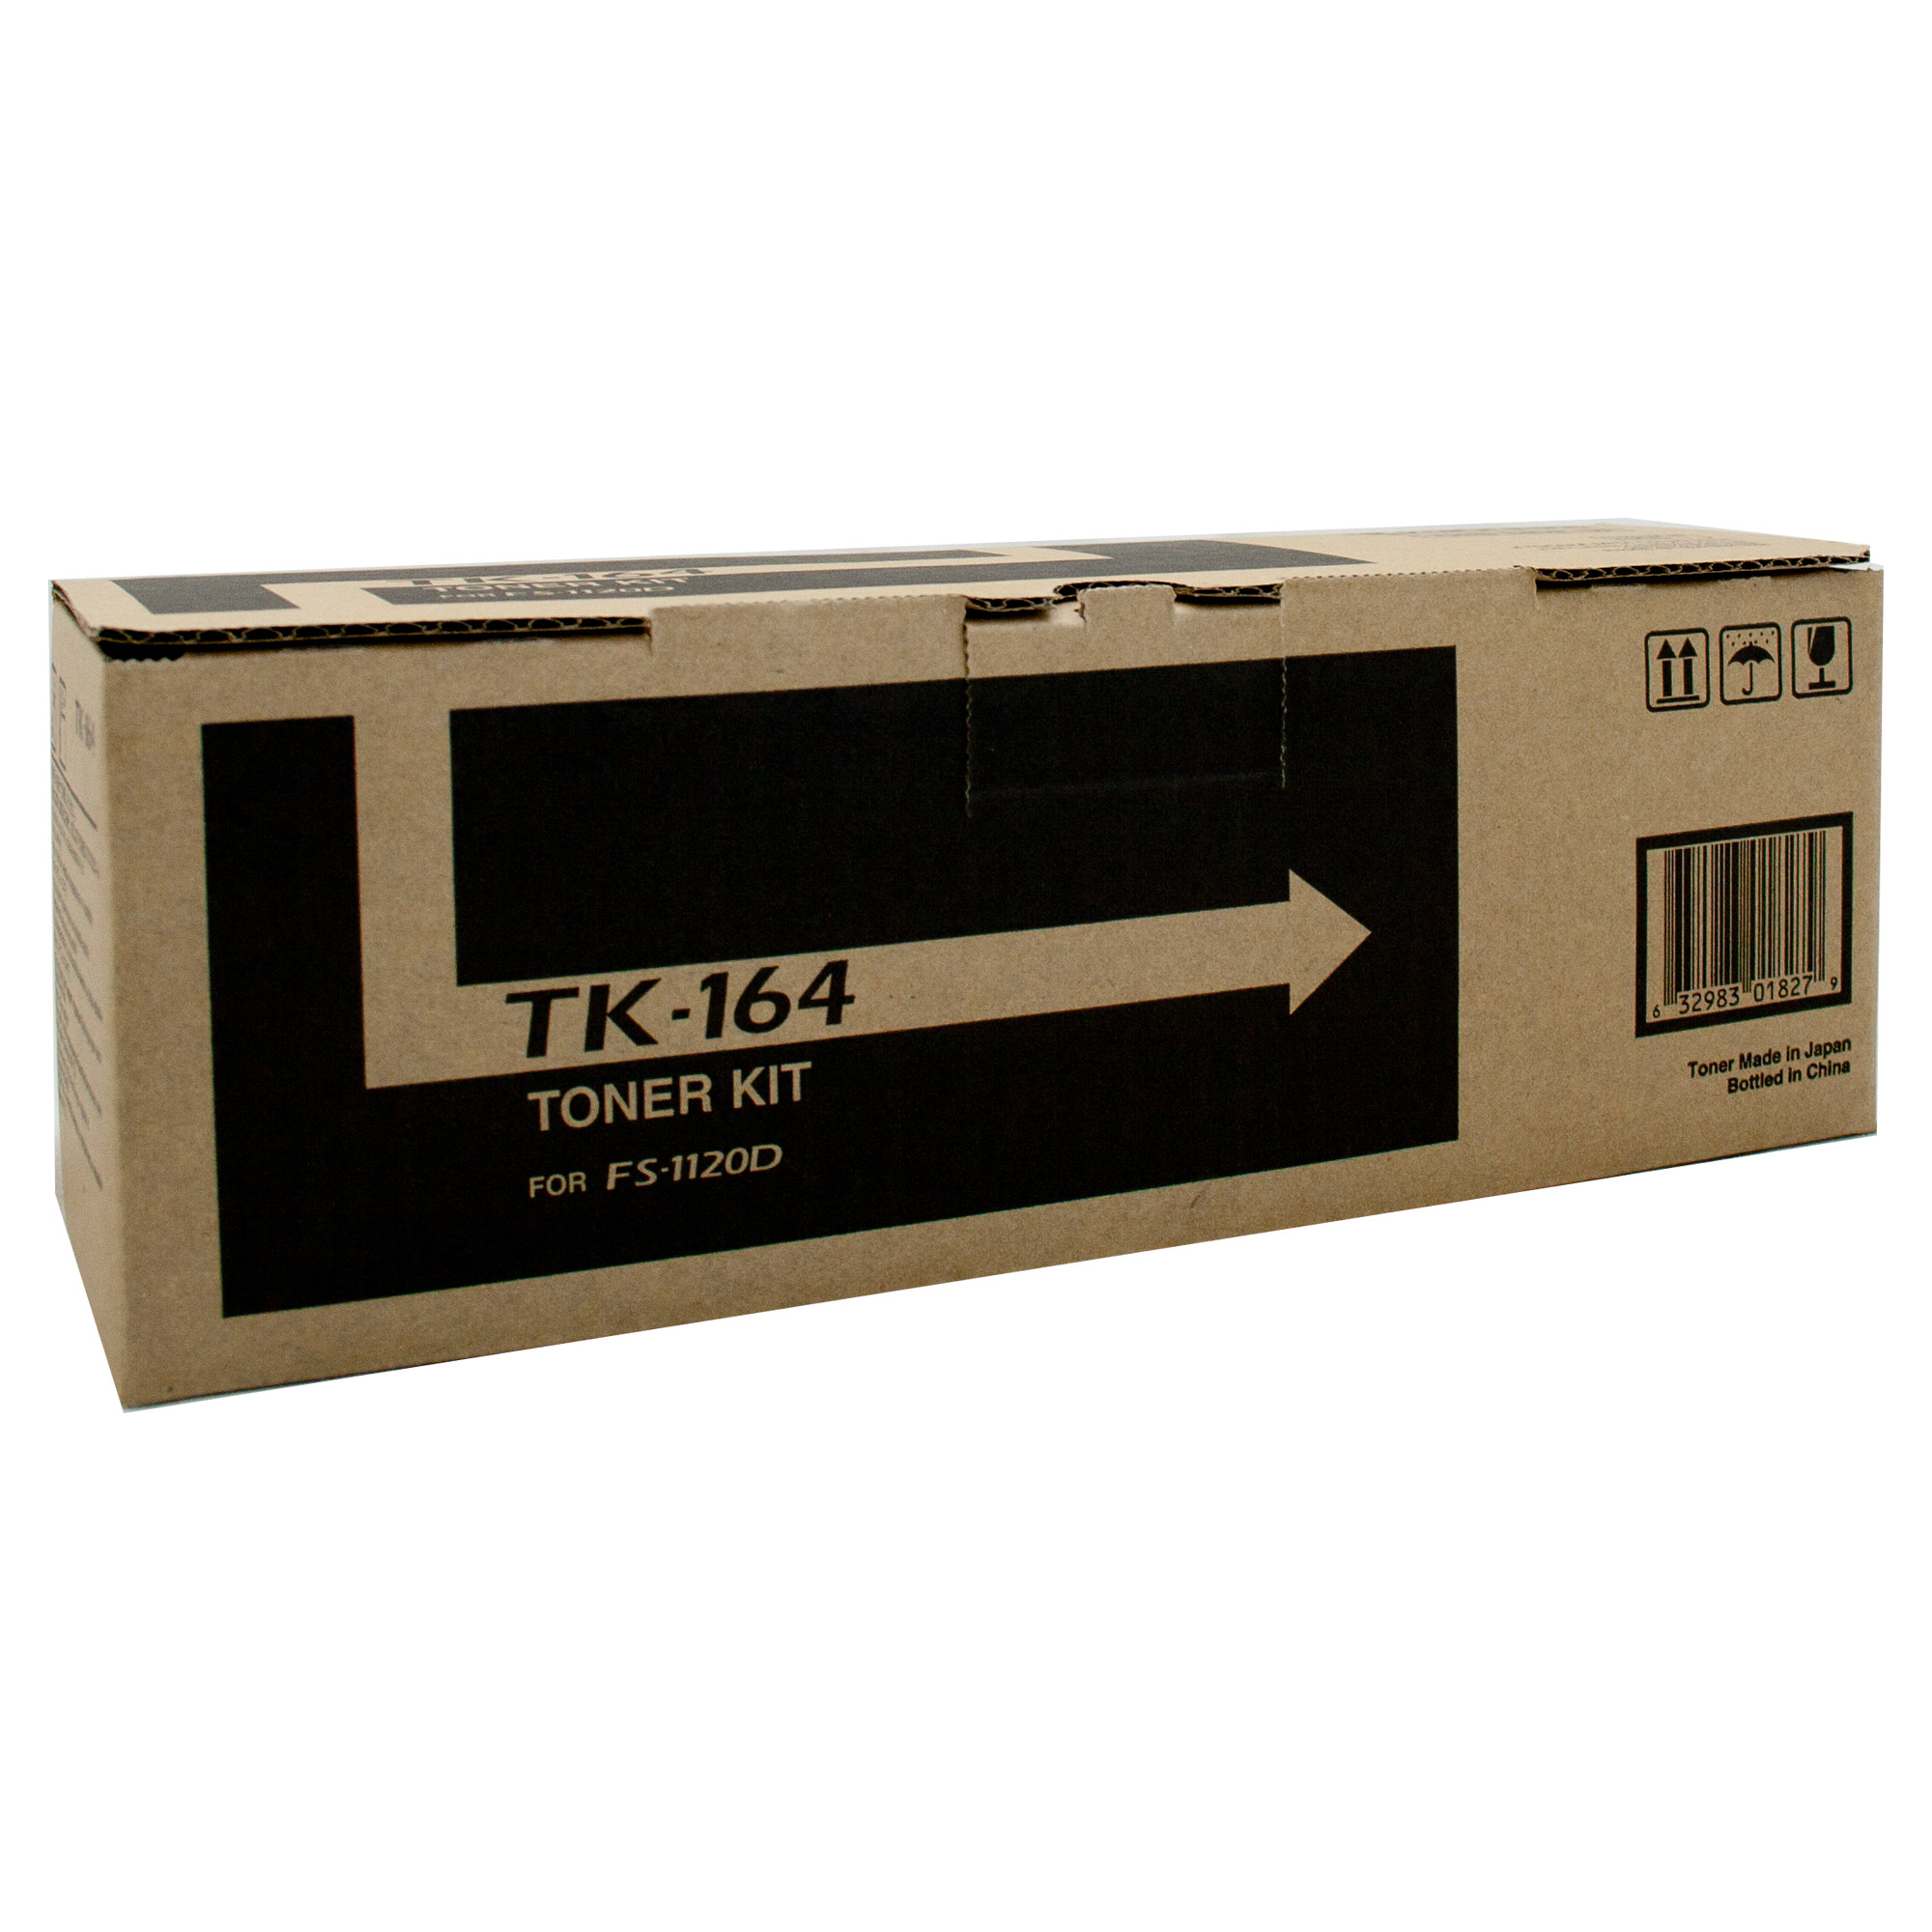 KYOCERA TK-164 Black Laser Toner Cartridge